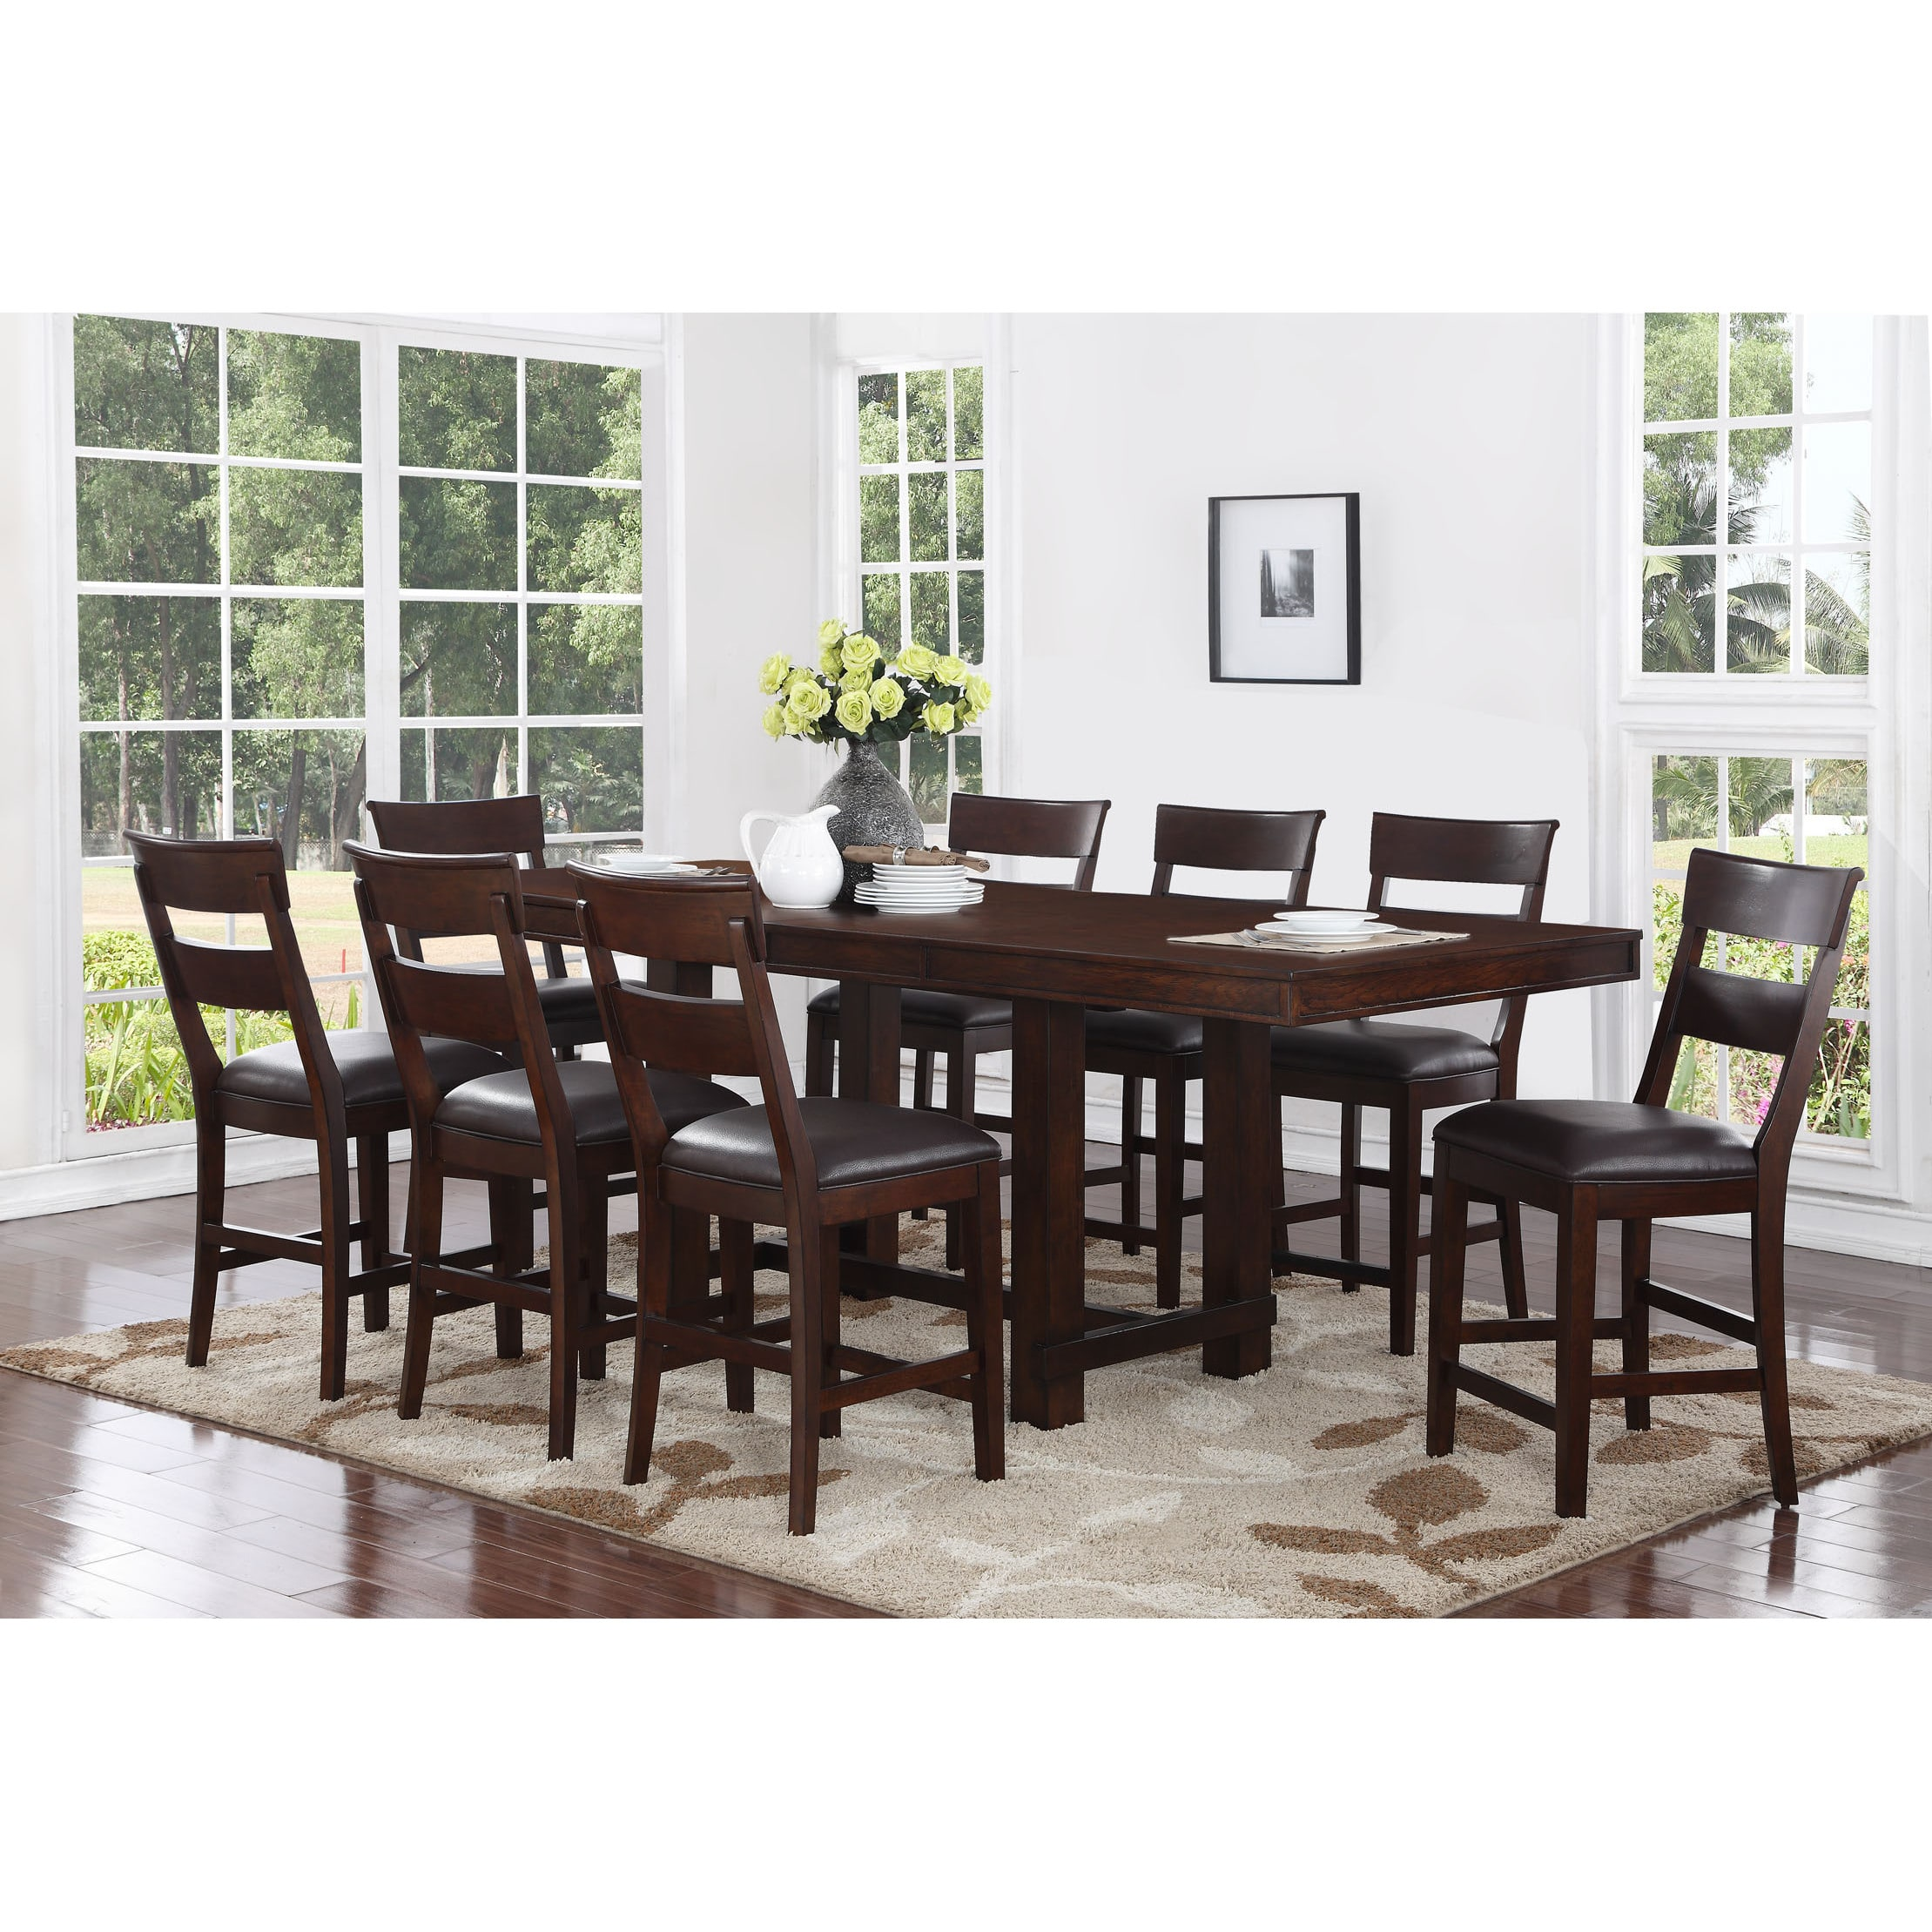 Craft and Main Alden 9 Piece Counter Height Dining Table Set  sc 1 st  Walmart & Craft and Main Alden 9 Piece Counter Height Dining Table Set ...